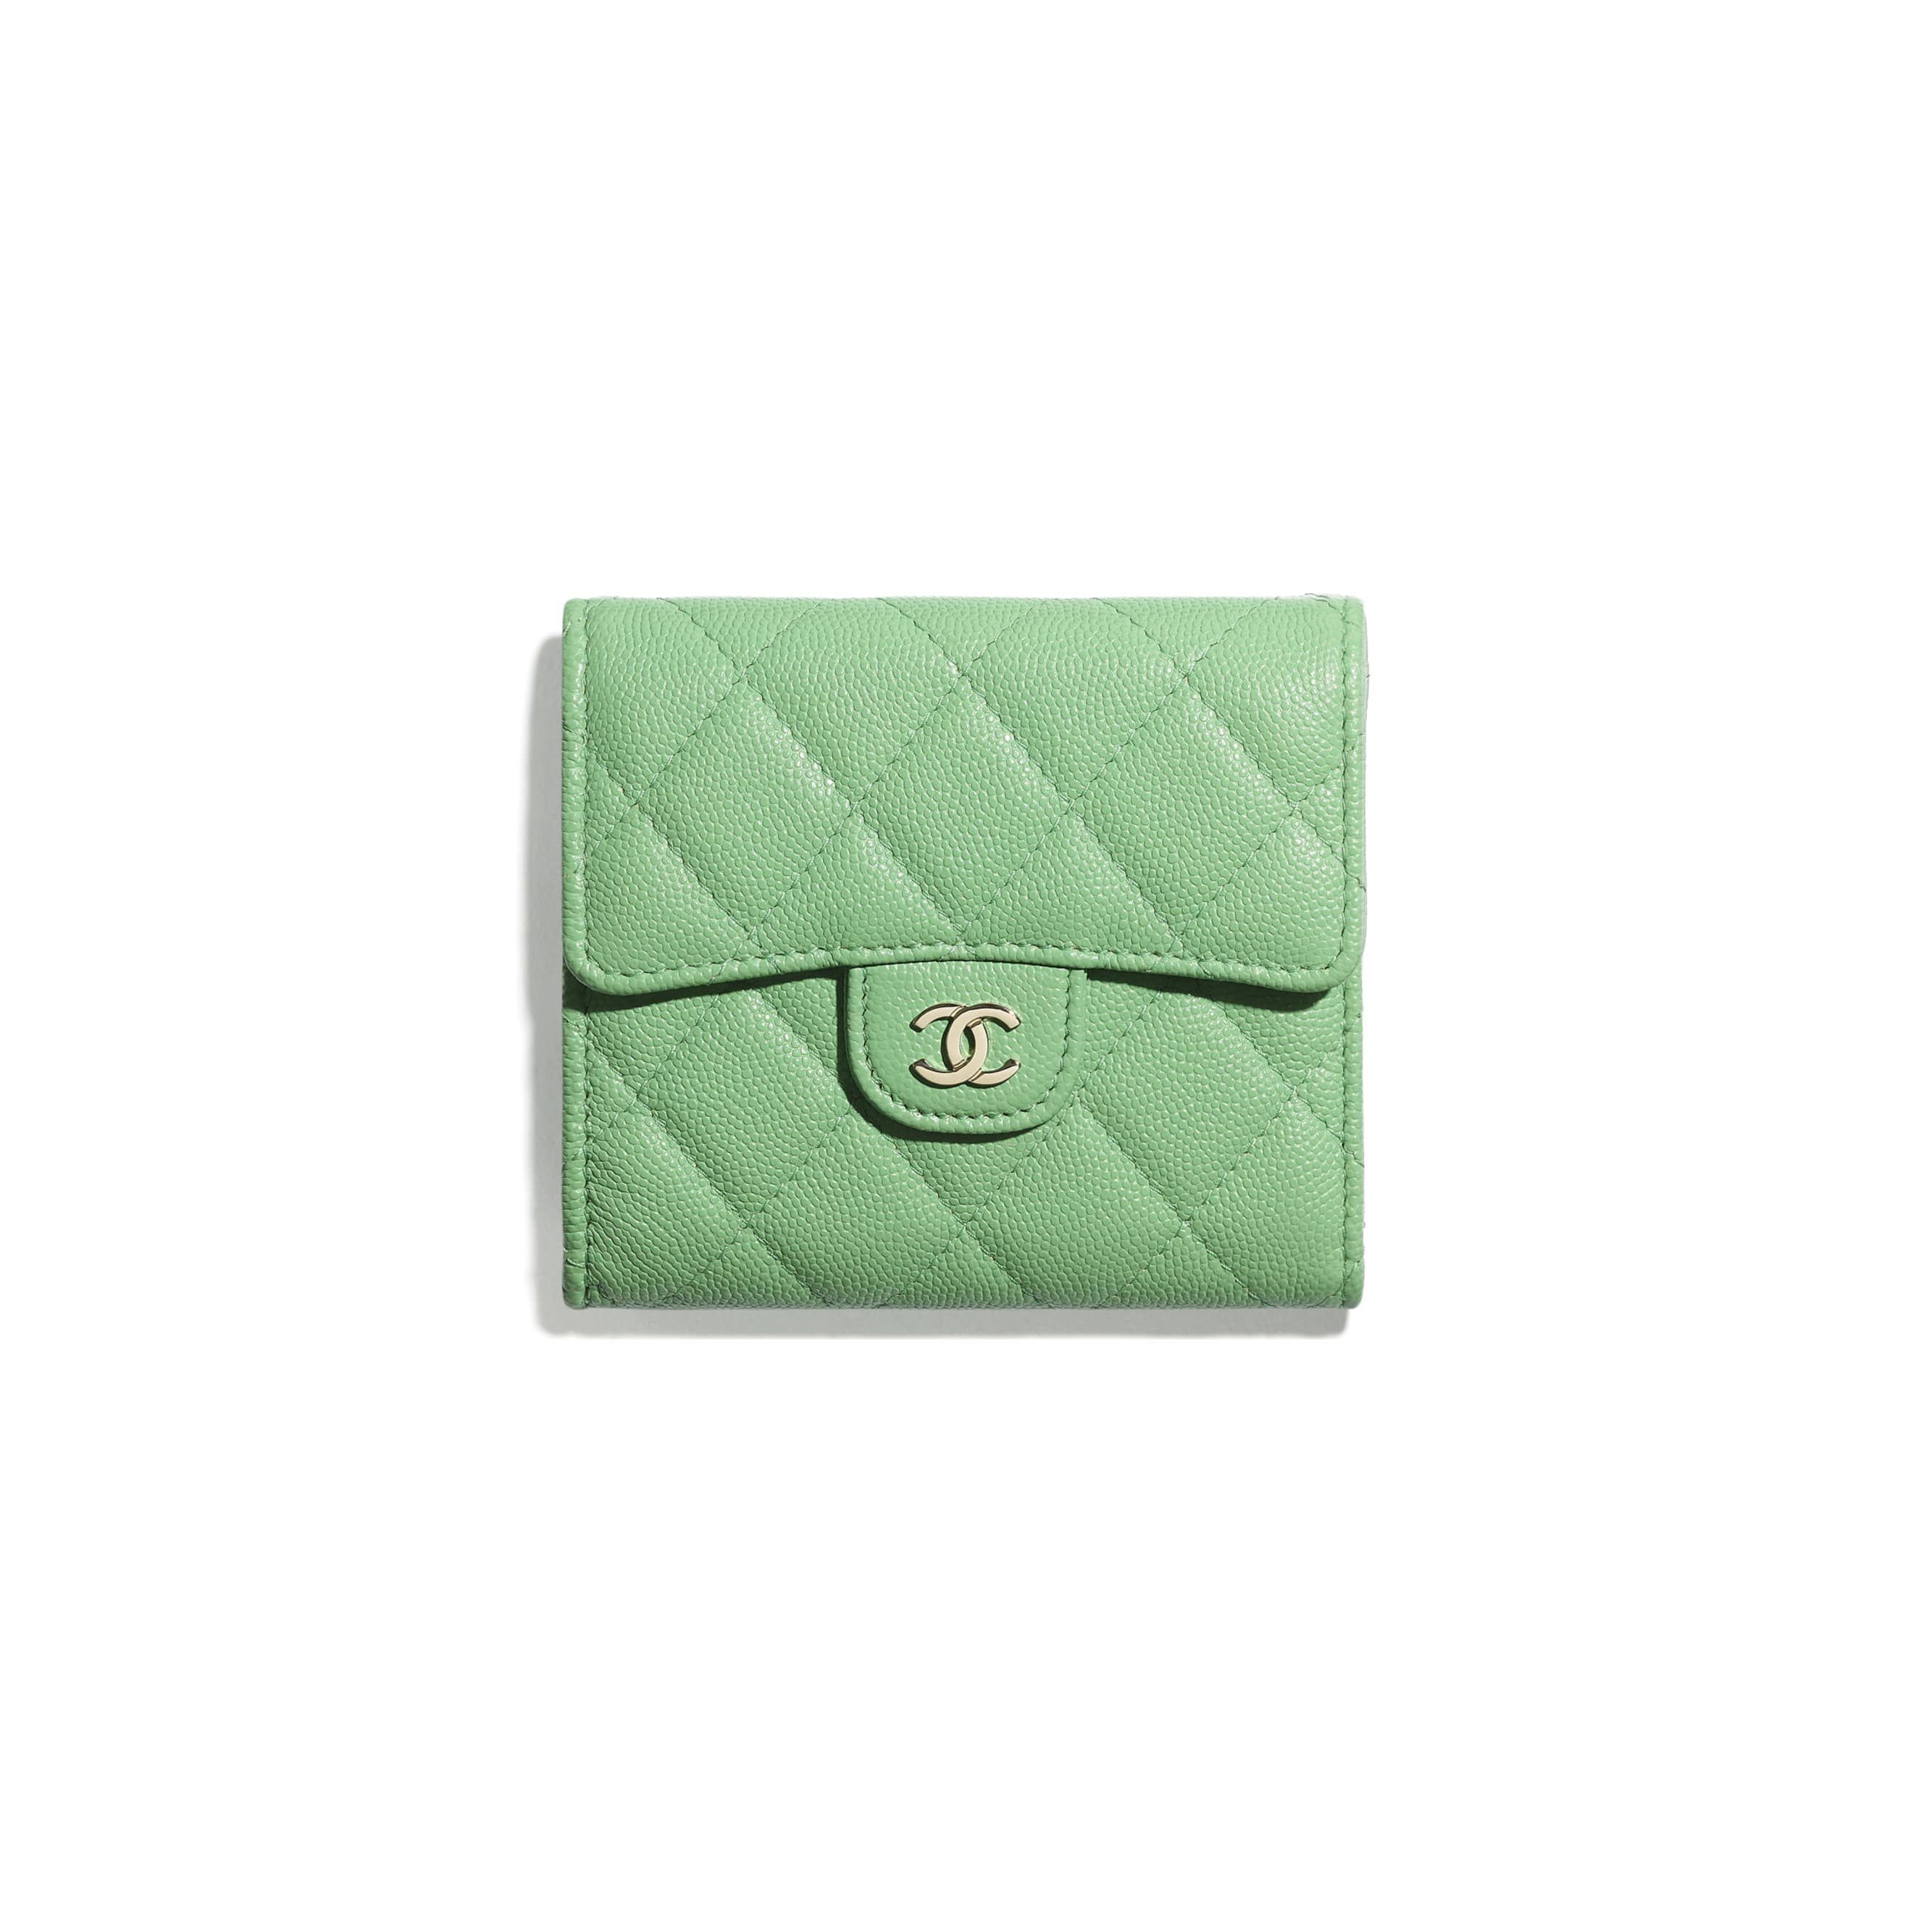 Classic Small Flap Wallet - Green - Grained Calfskin & Gold-Tone Metal - CHANEL - Default view - see standard sized version